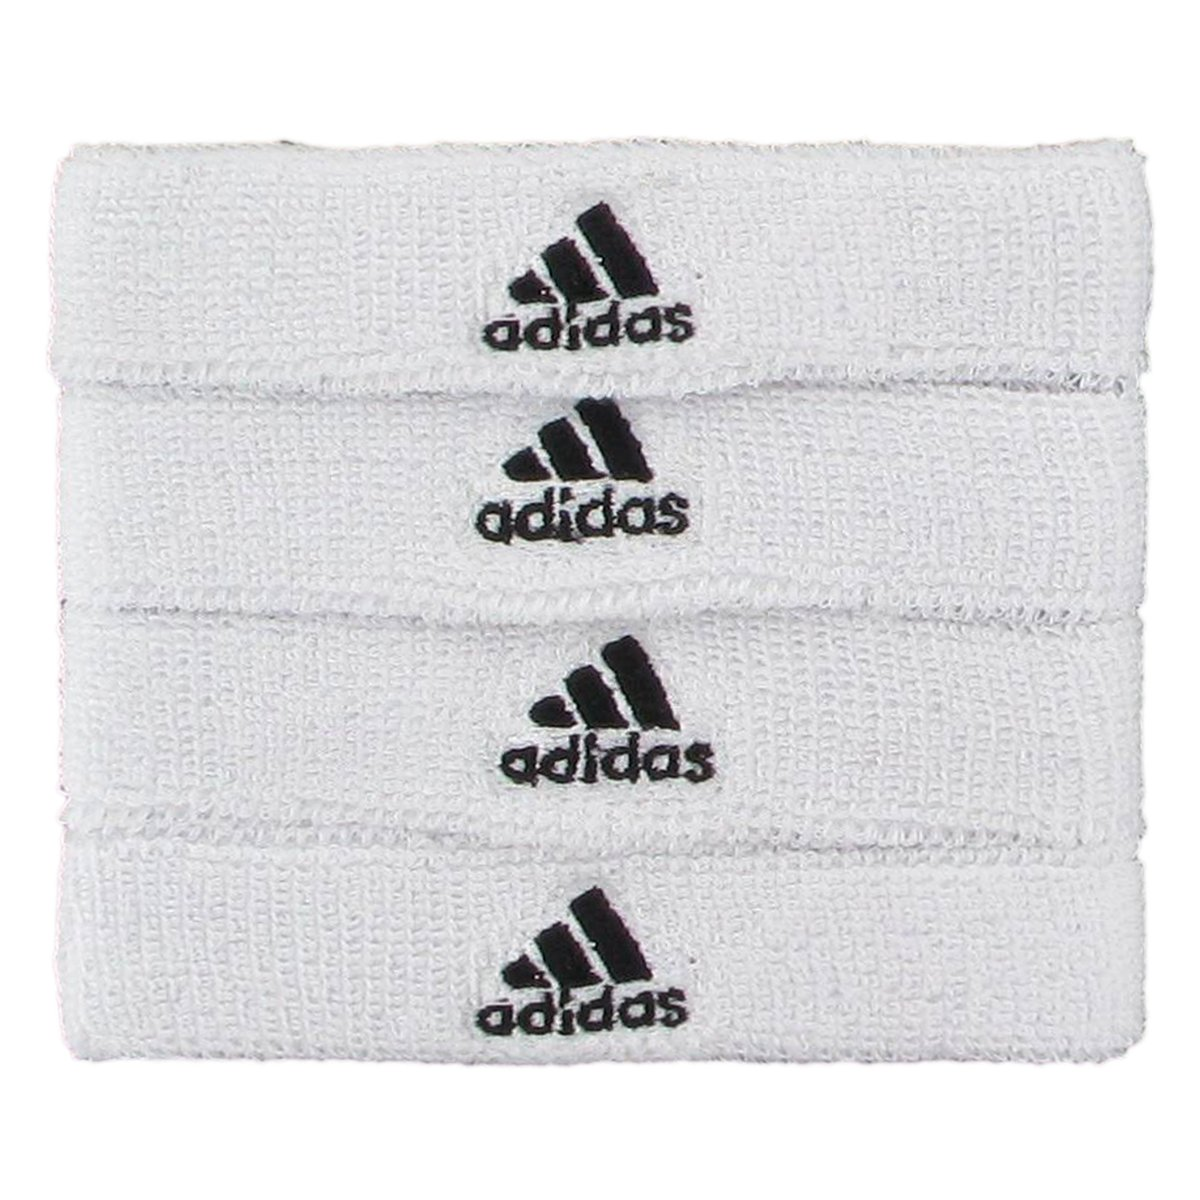 adidas Interval 3/4-inch Bicep Band Sweatband